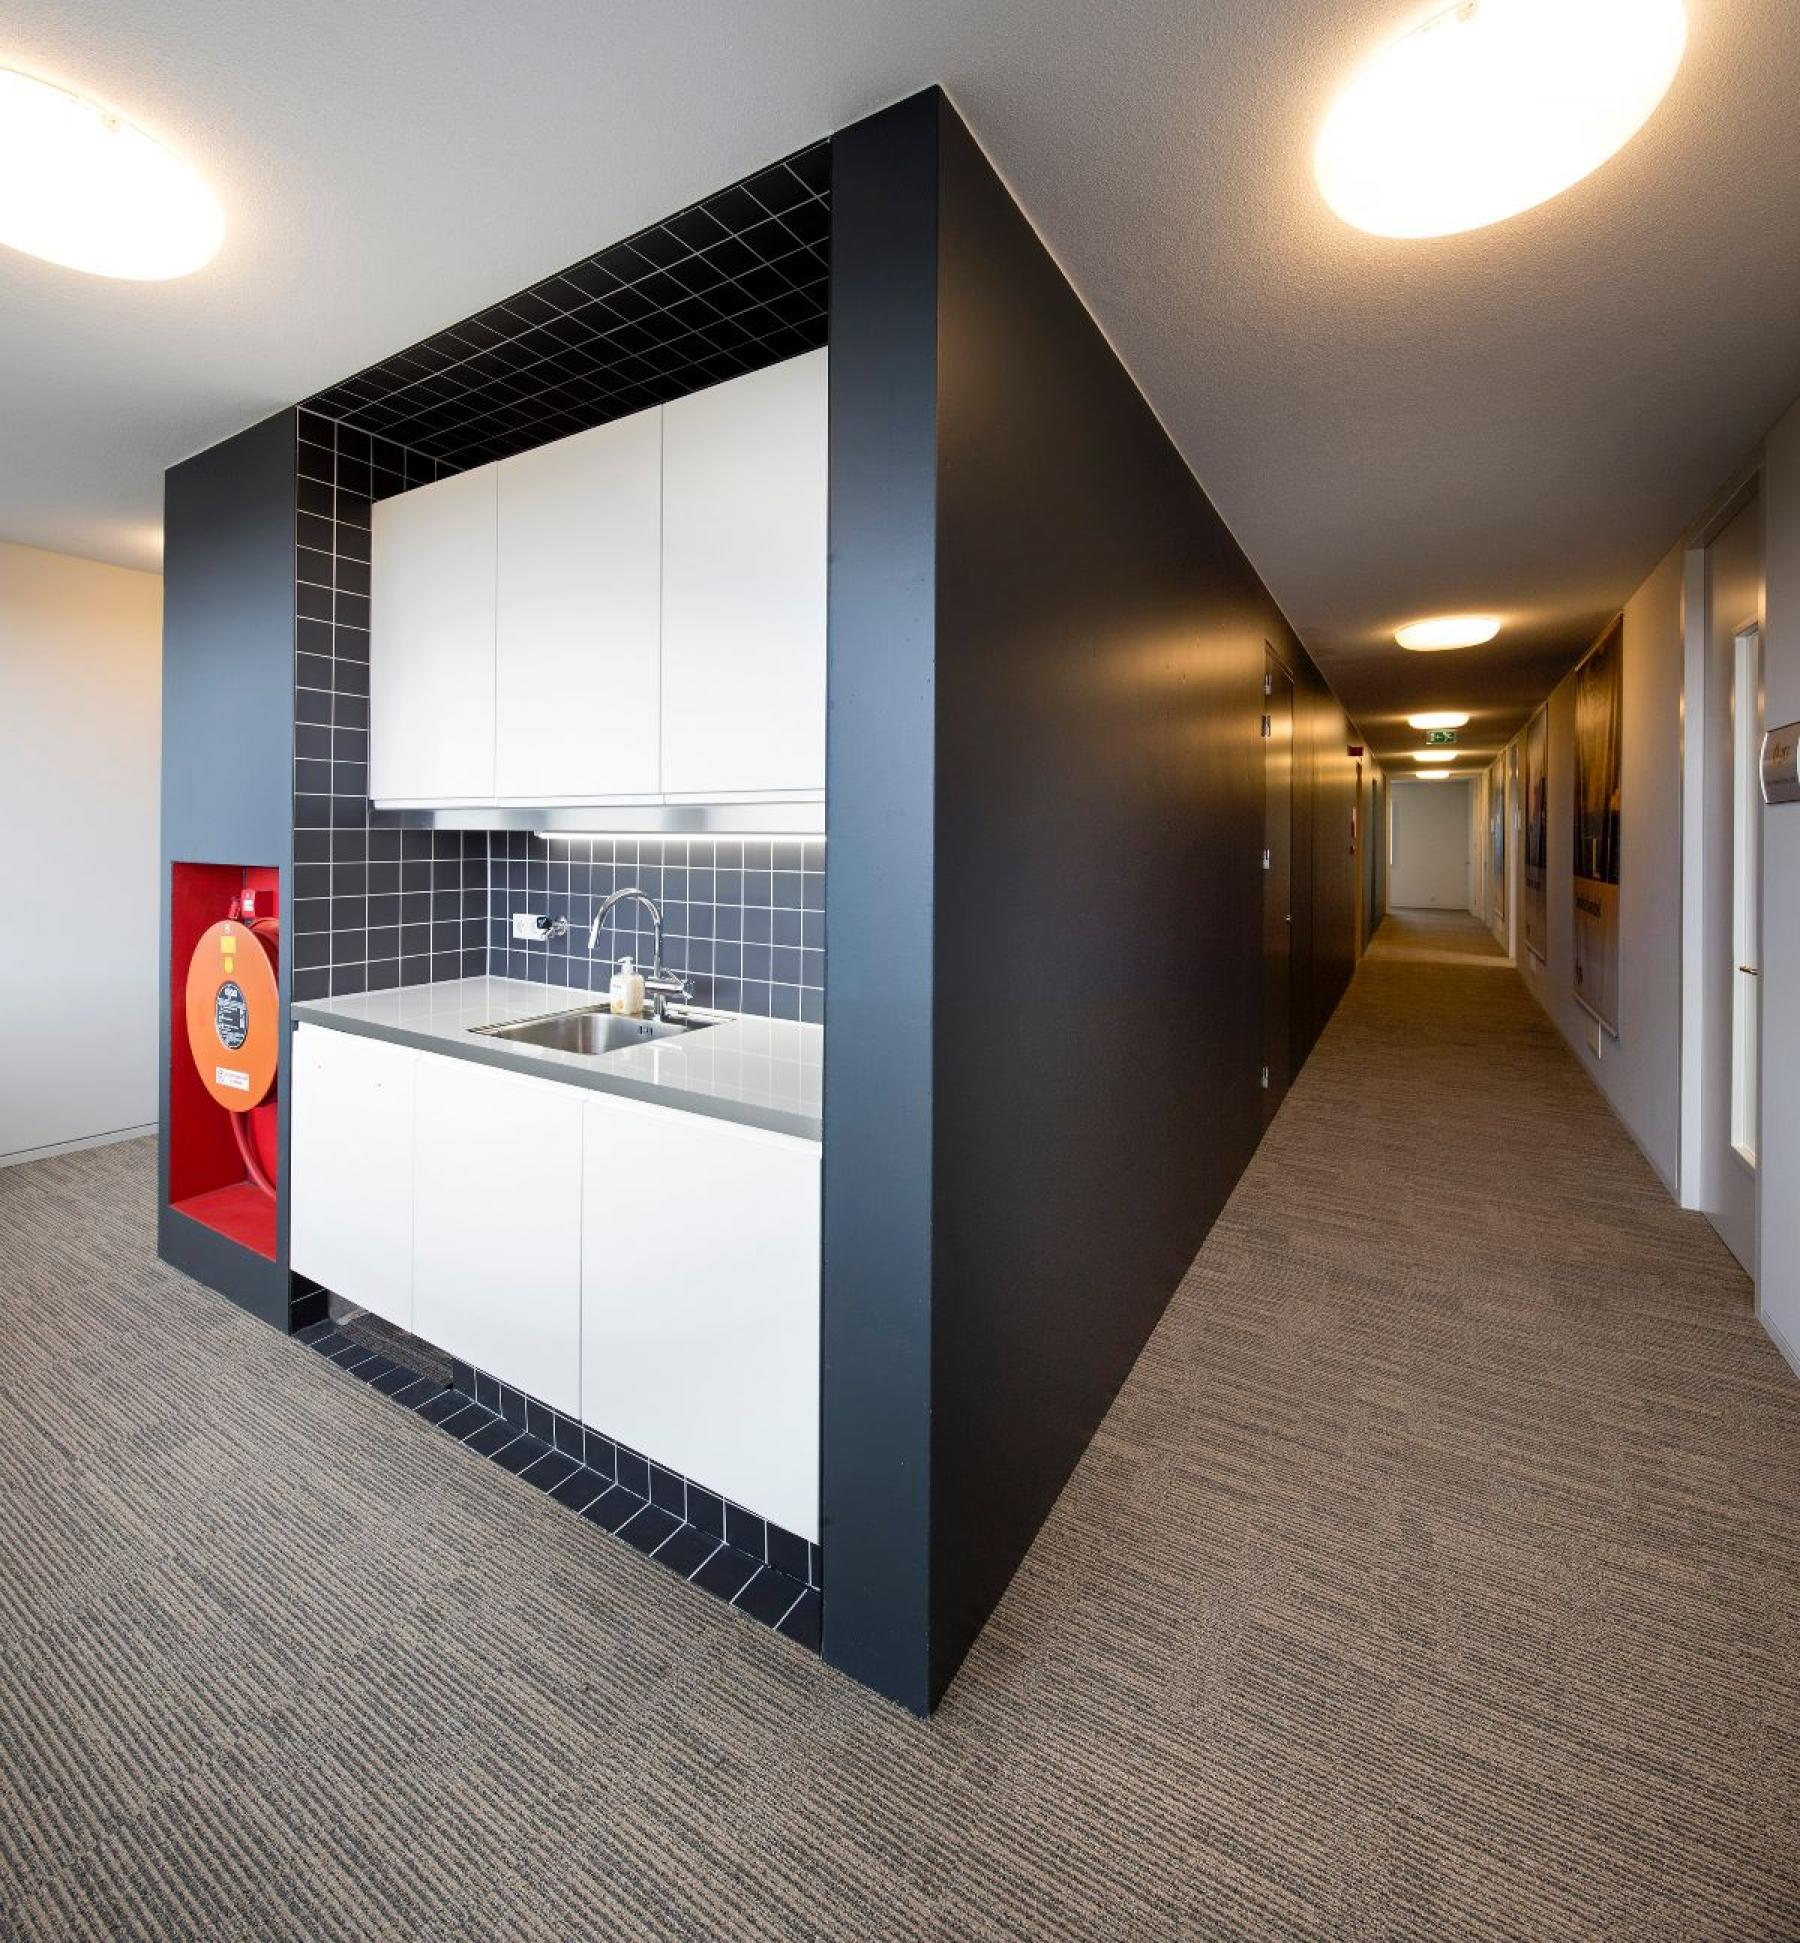 The pantry in the office building